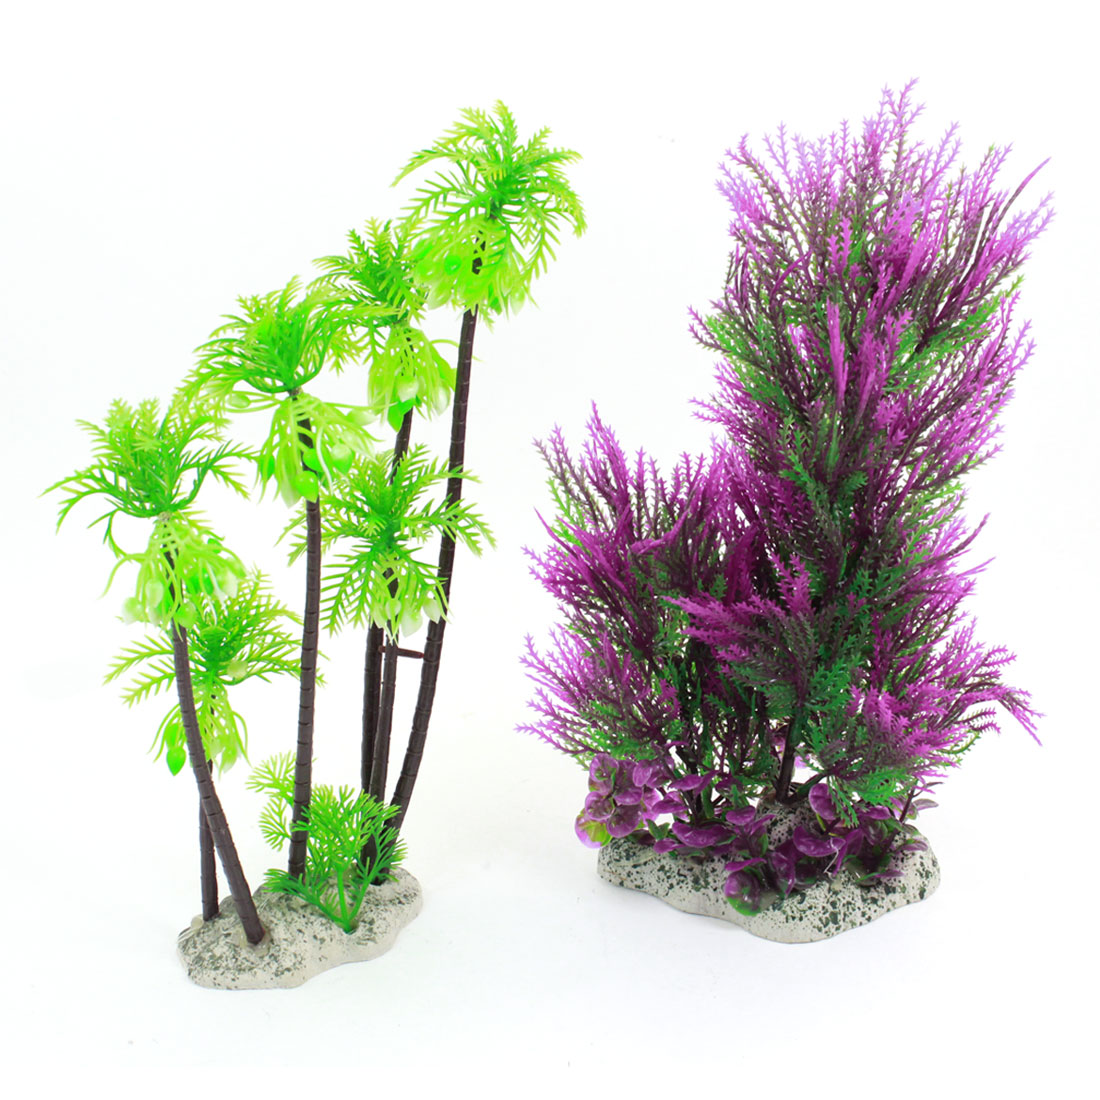 "Aquarium Tank Emulational Green Fuchsia Underwater Plant 11"" High 2 Pcs"